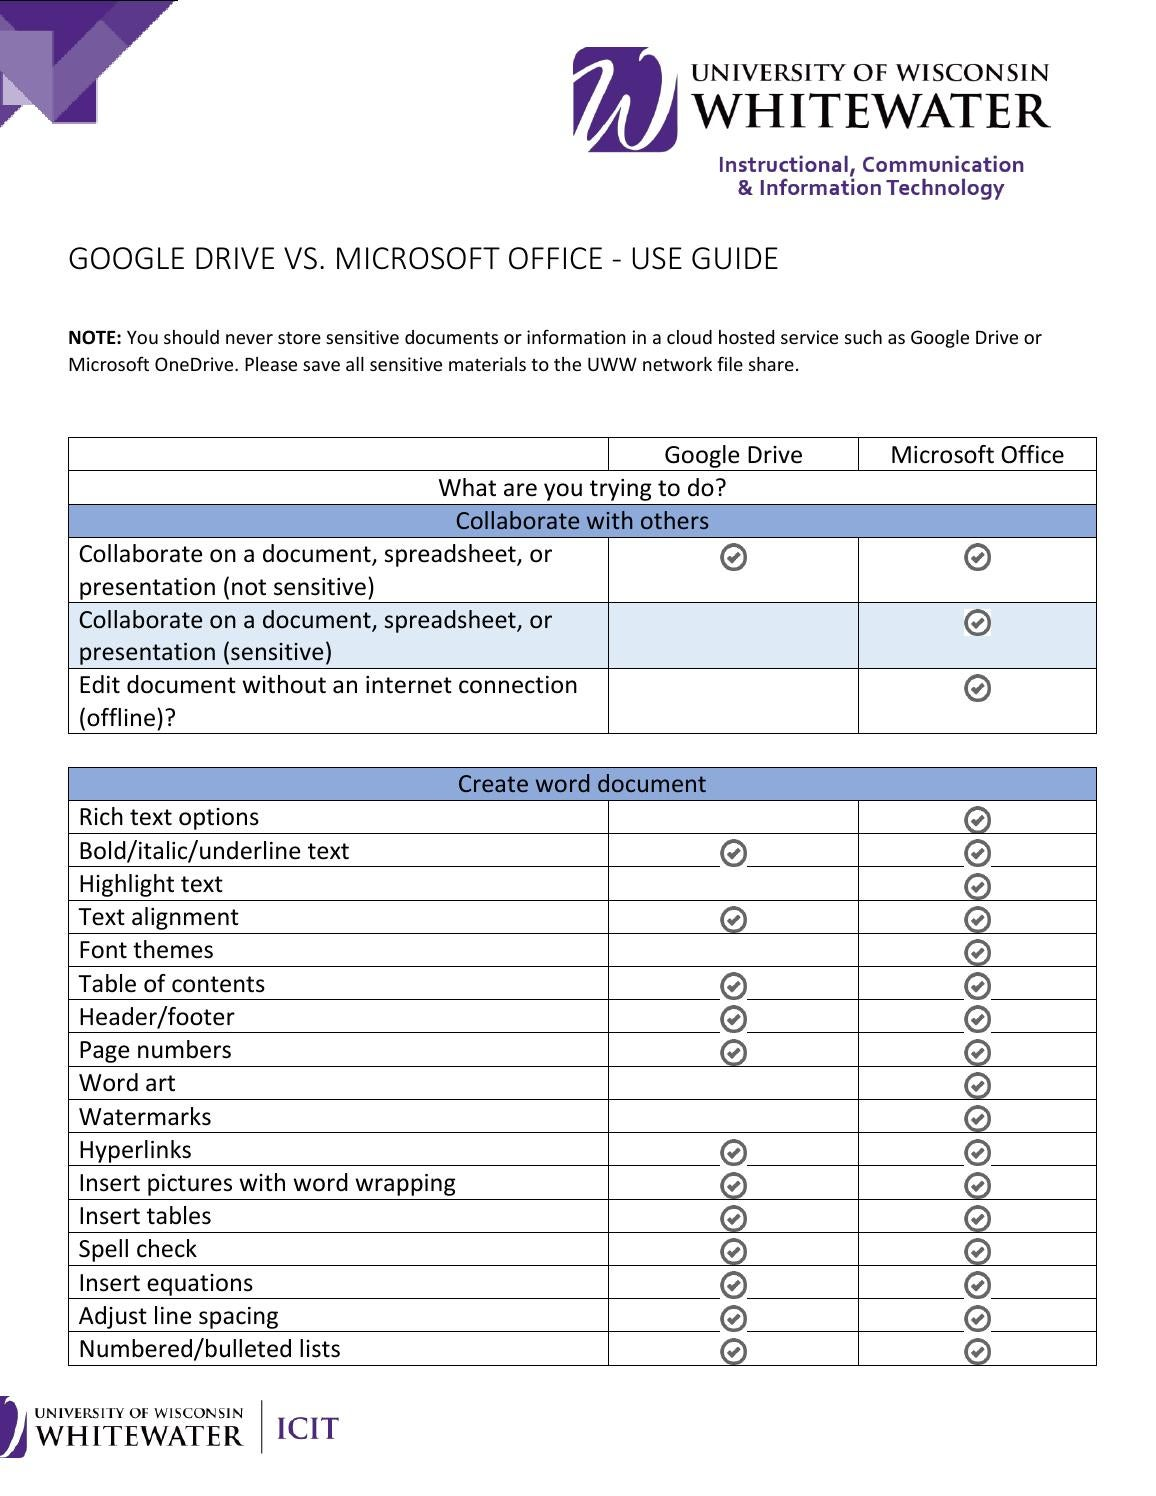 Icit google drive vs microsoft office